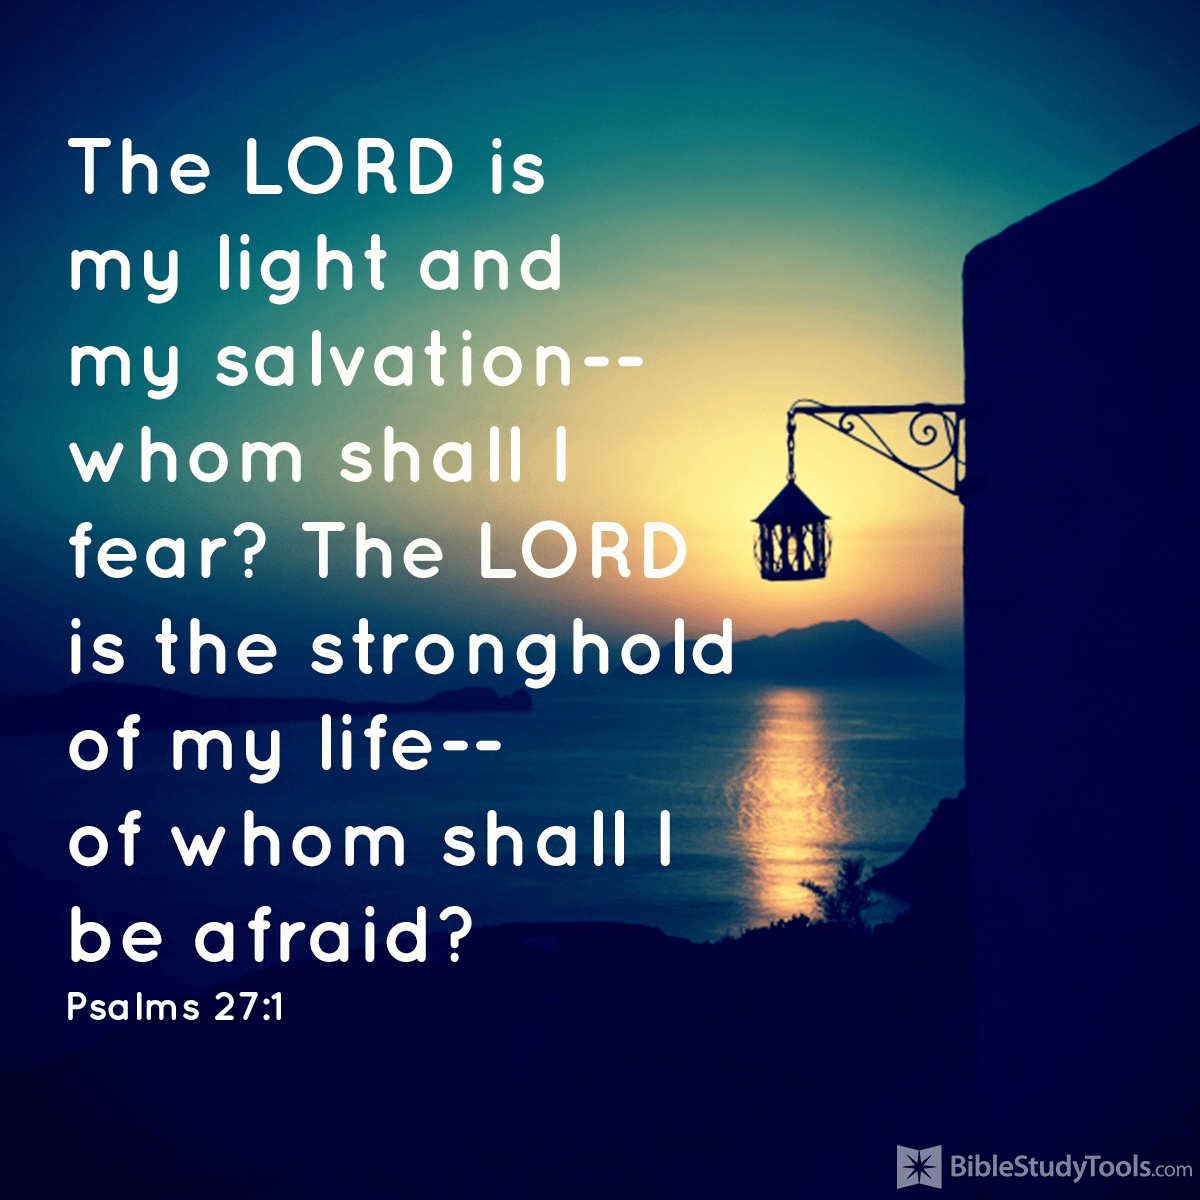 Of Whom Shall I Be Afraid?